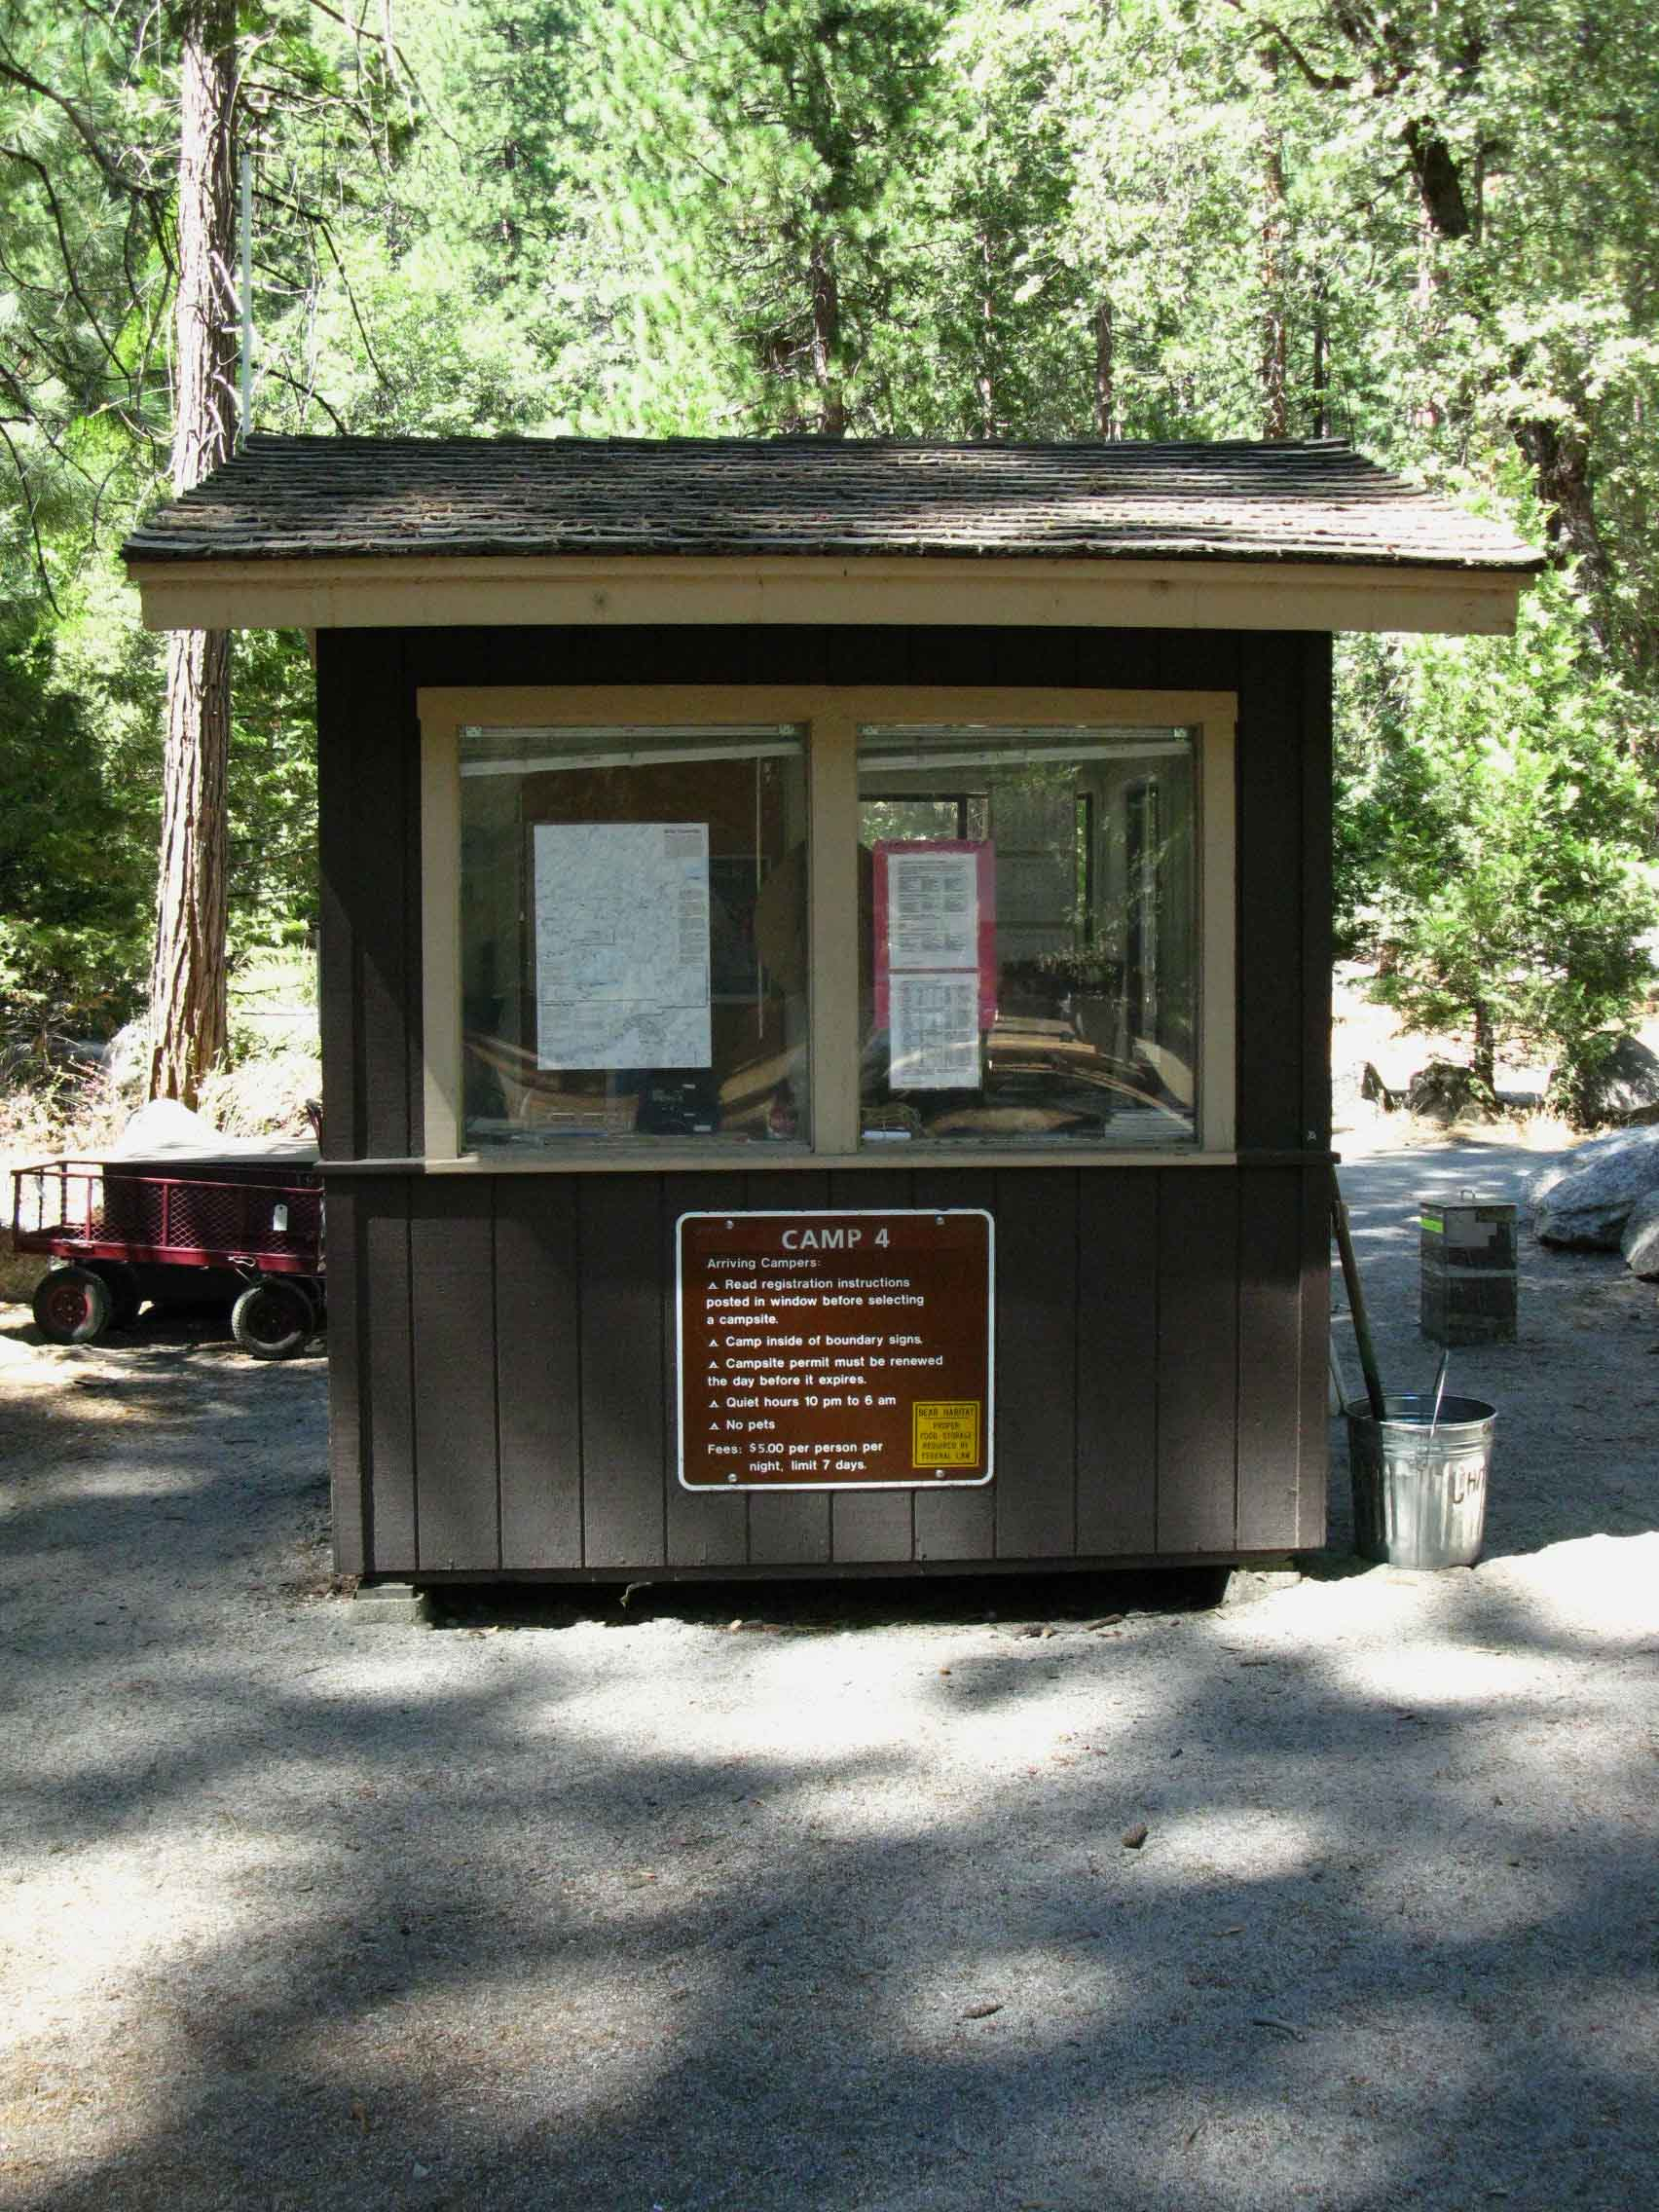 The Ranger Booth at Camp 4 in Yosemite Valley, 2012.